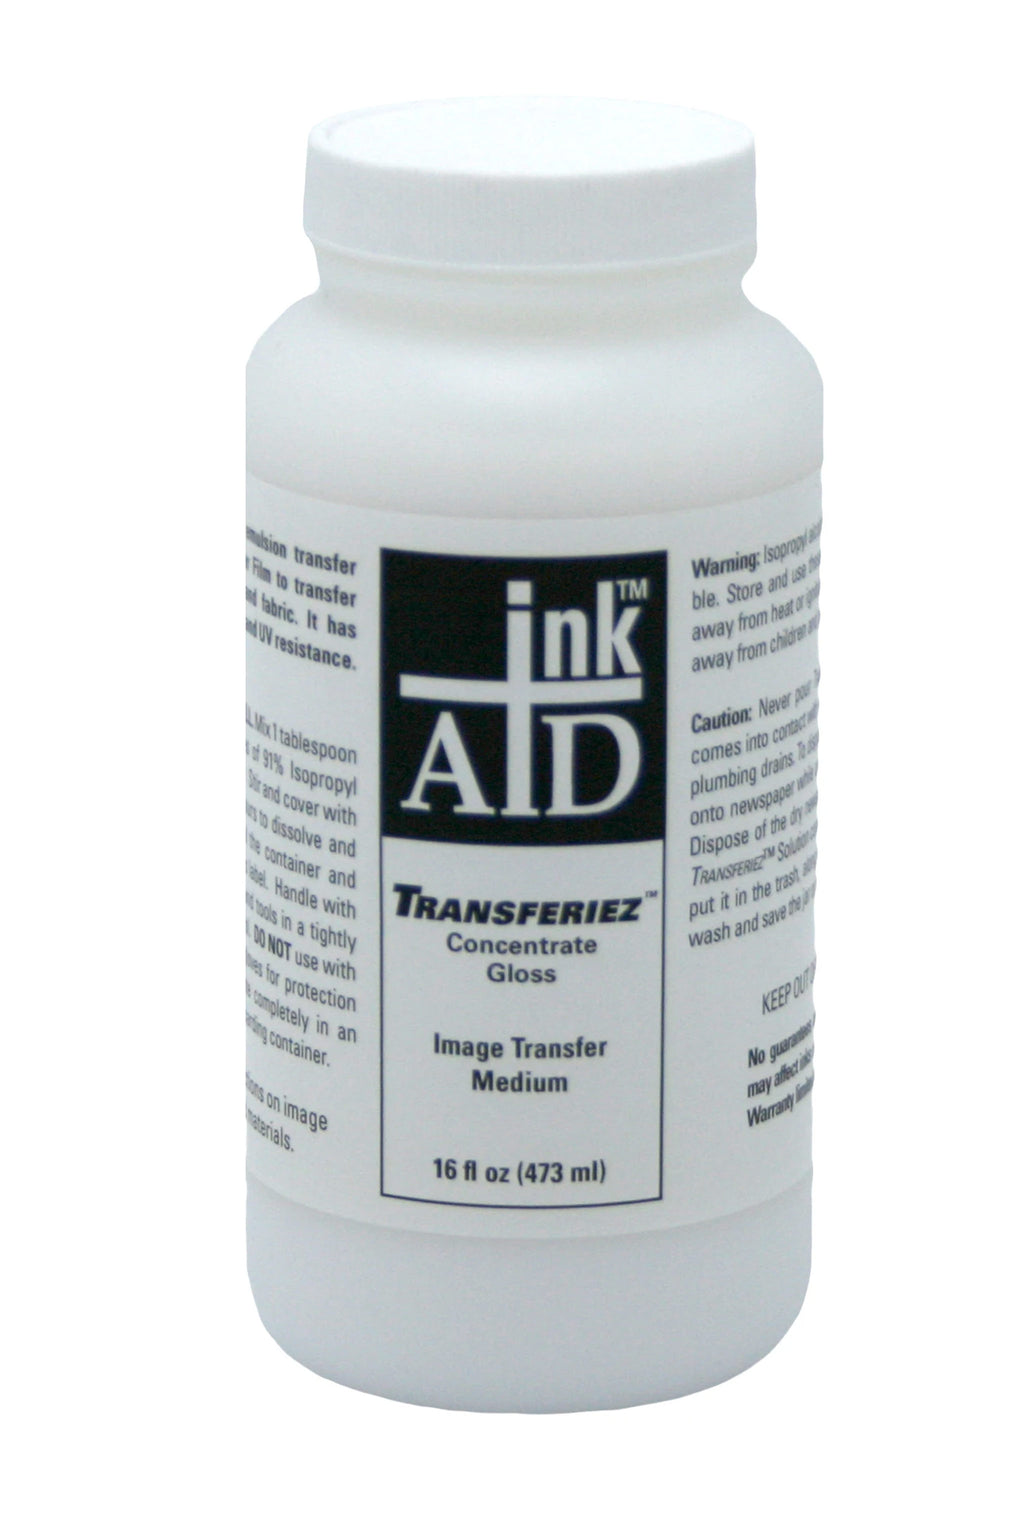 inkAID Transferiez Image Transfer Medium